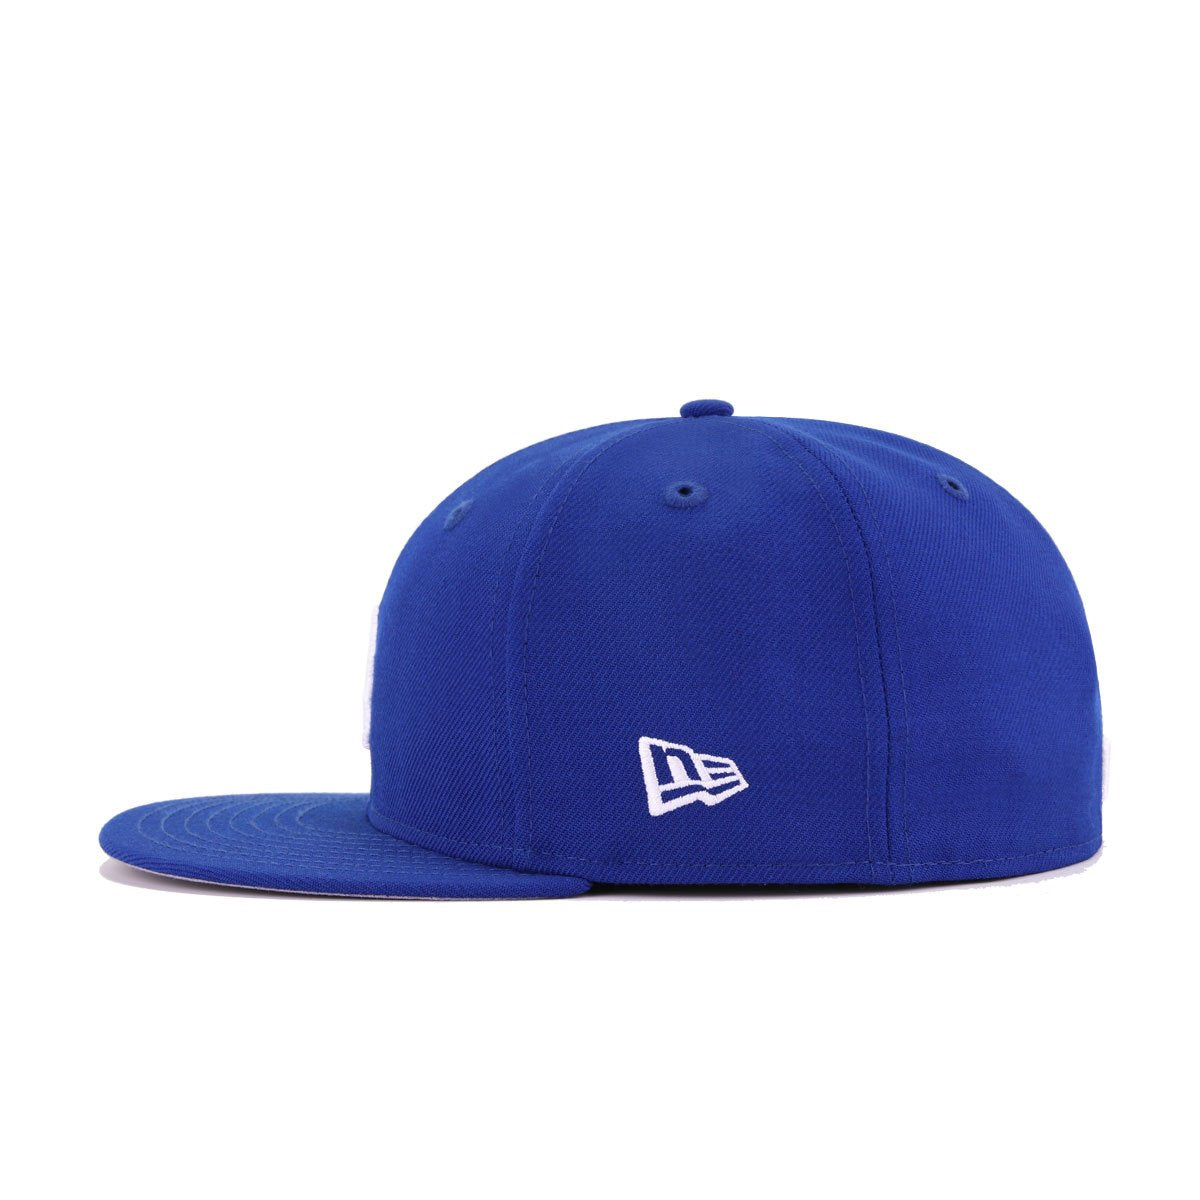 Los Angeles Dodgers Light Royal Blue 2017 World Series New Era 59Fifty Fitted